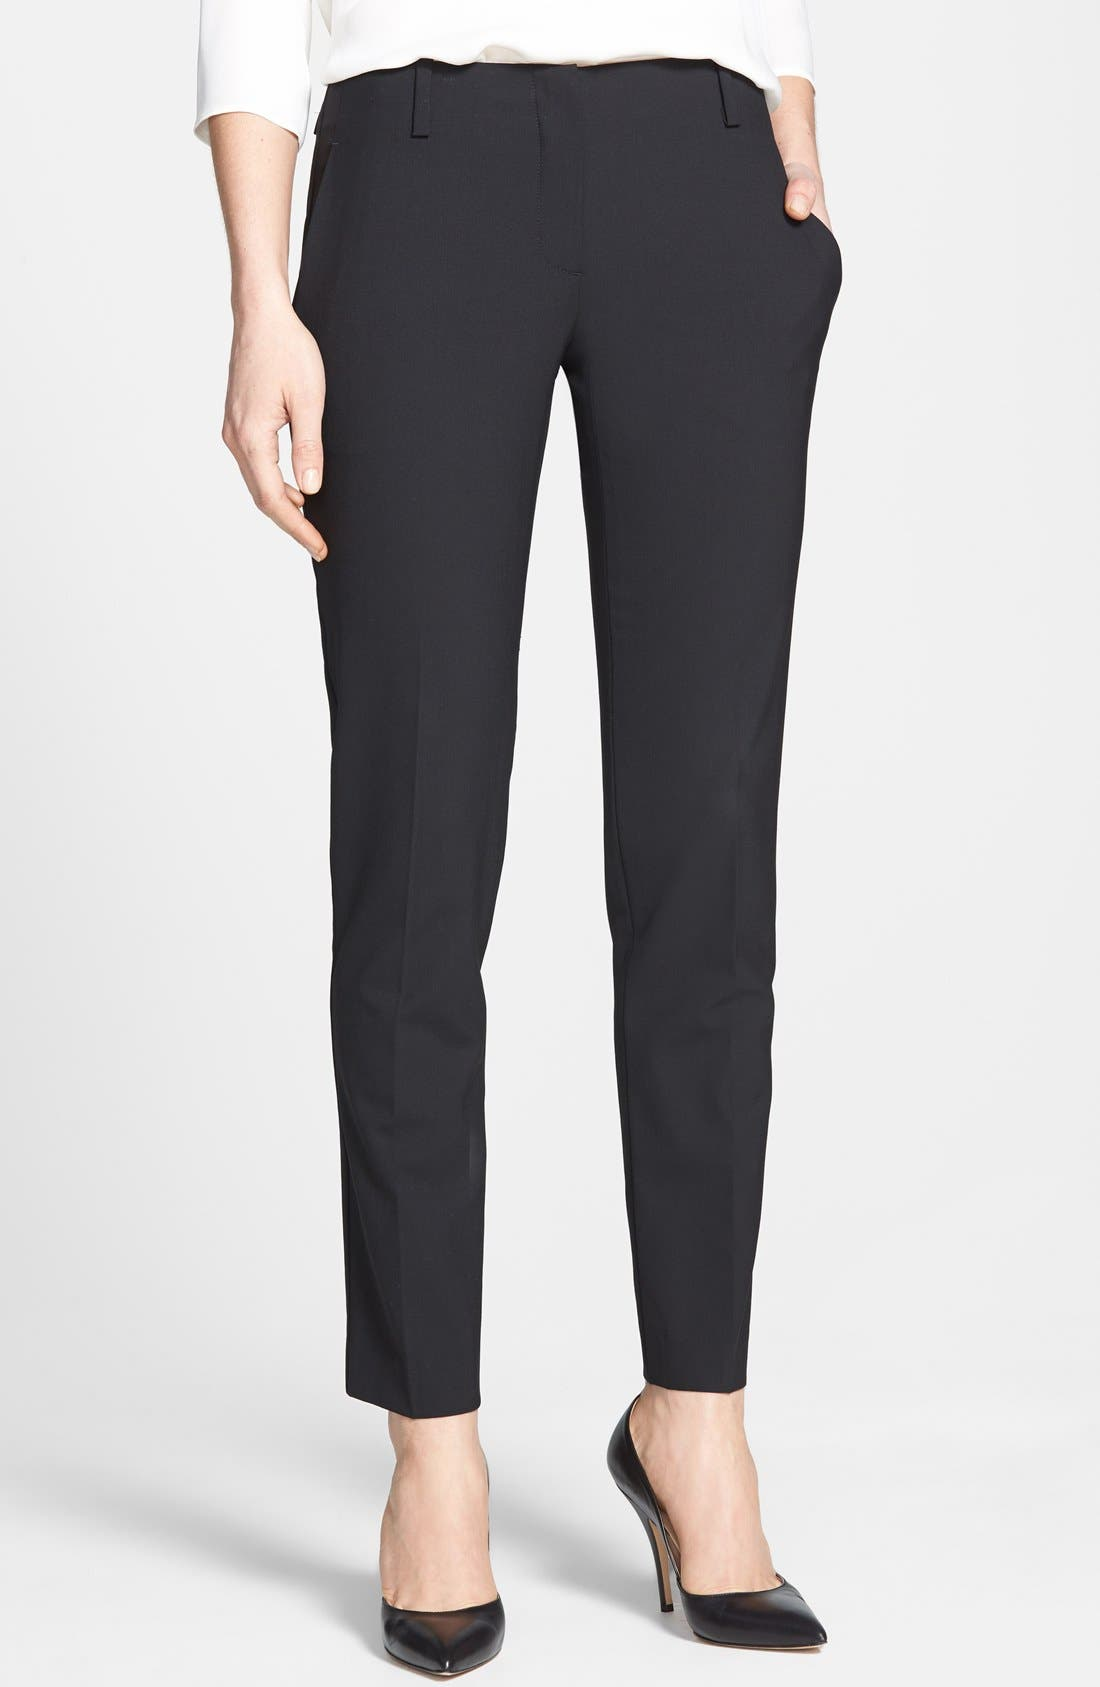 Alternate Image 1 Selected - Theory 'Ines' Crop Stretch Wool Trousers